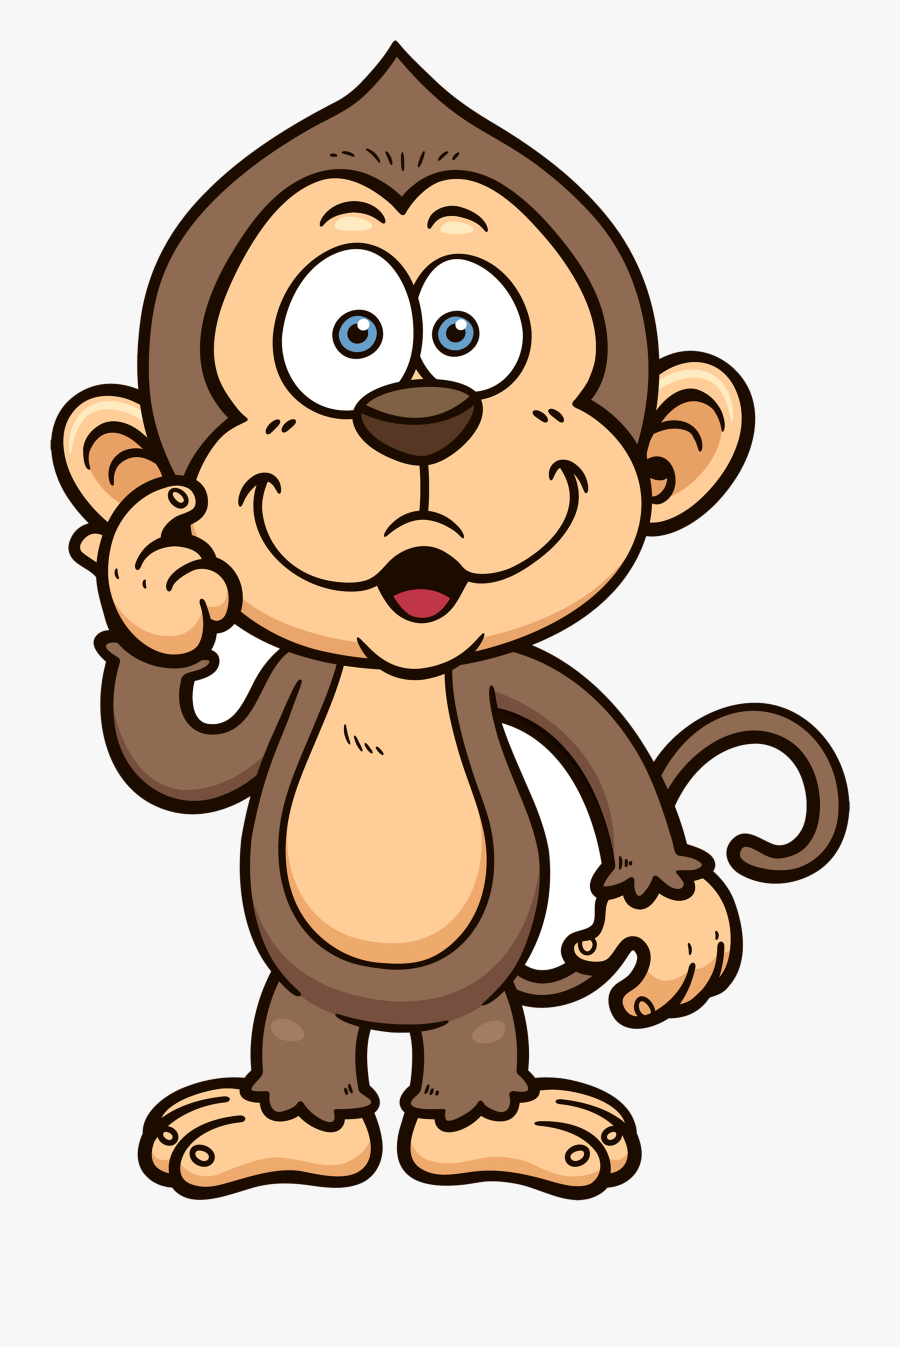 Monkey Cliparts For Free Monkeys Clipart Student And - Monkey Cartoon Transparent Background, Transparent Clipart